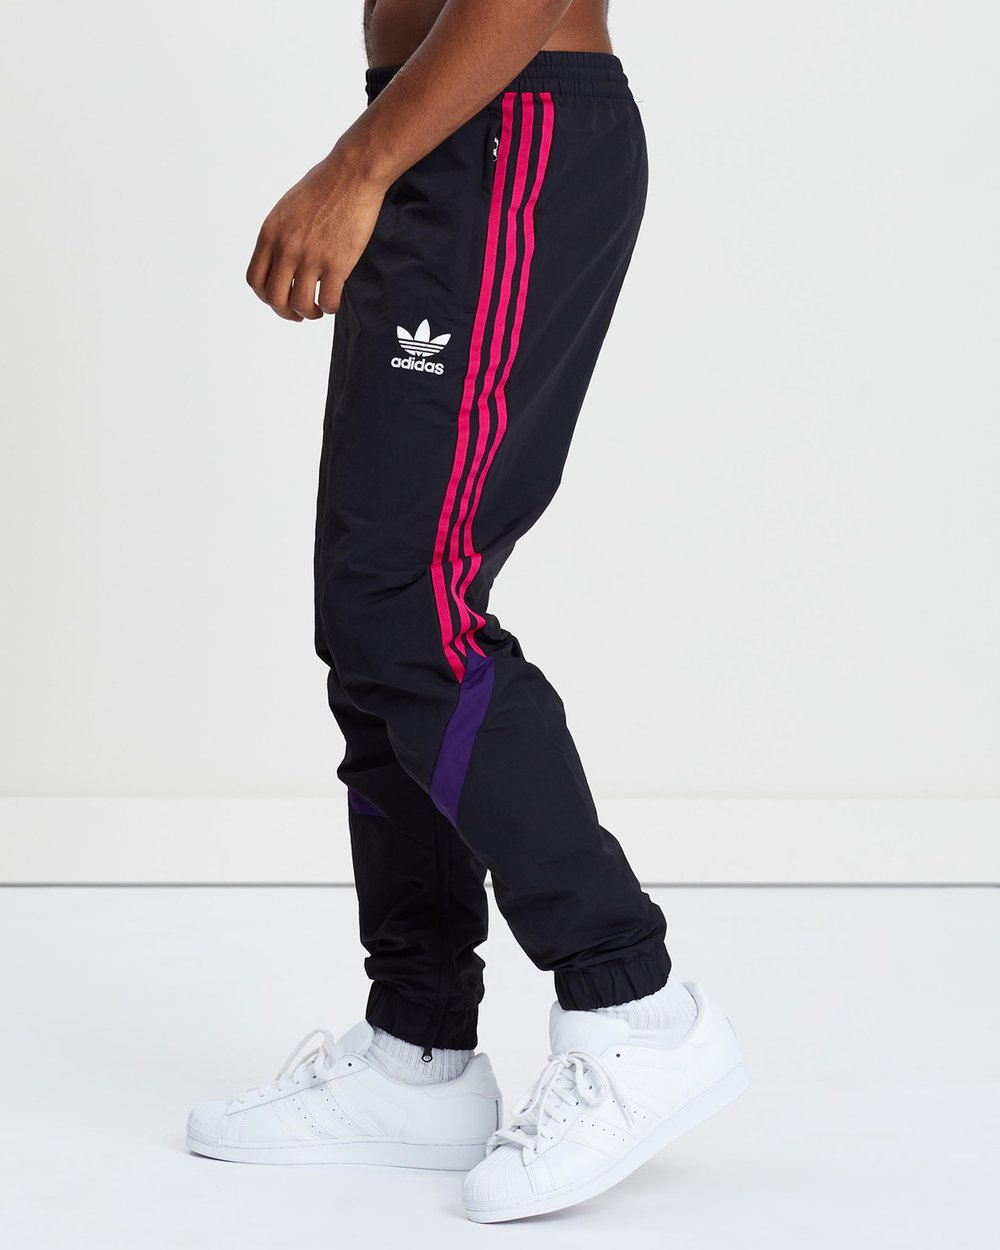 low priced 8a273 473d3 Sportive Track Pants by adidas Originals Online  THE ICONIC